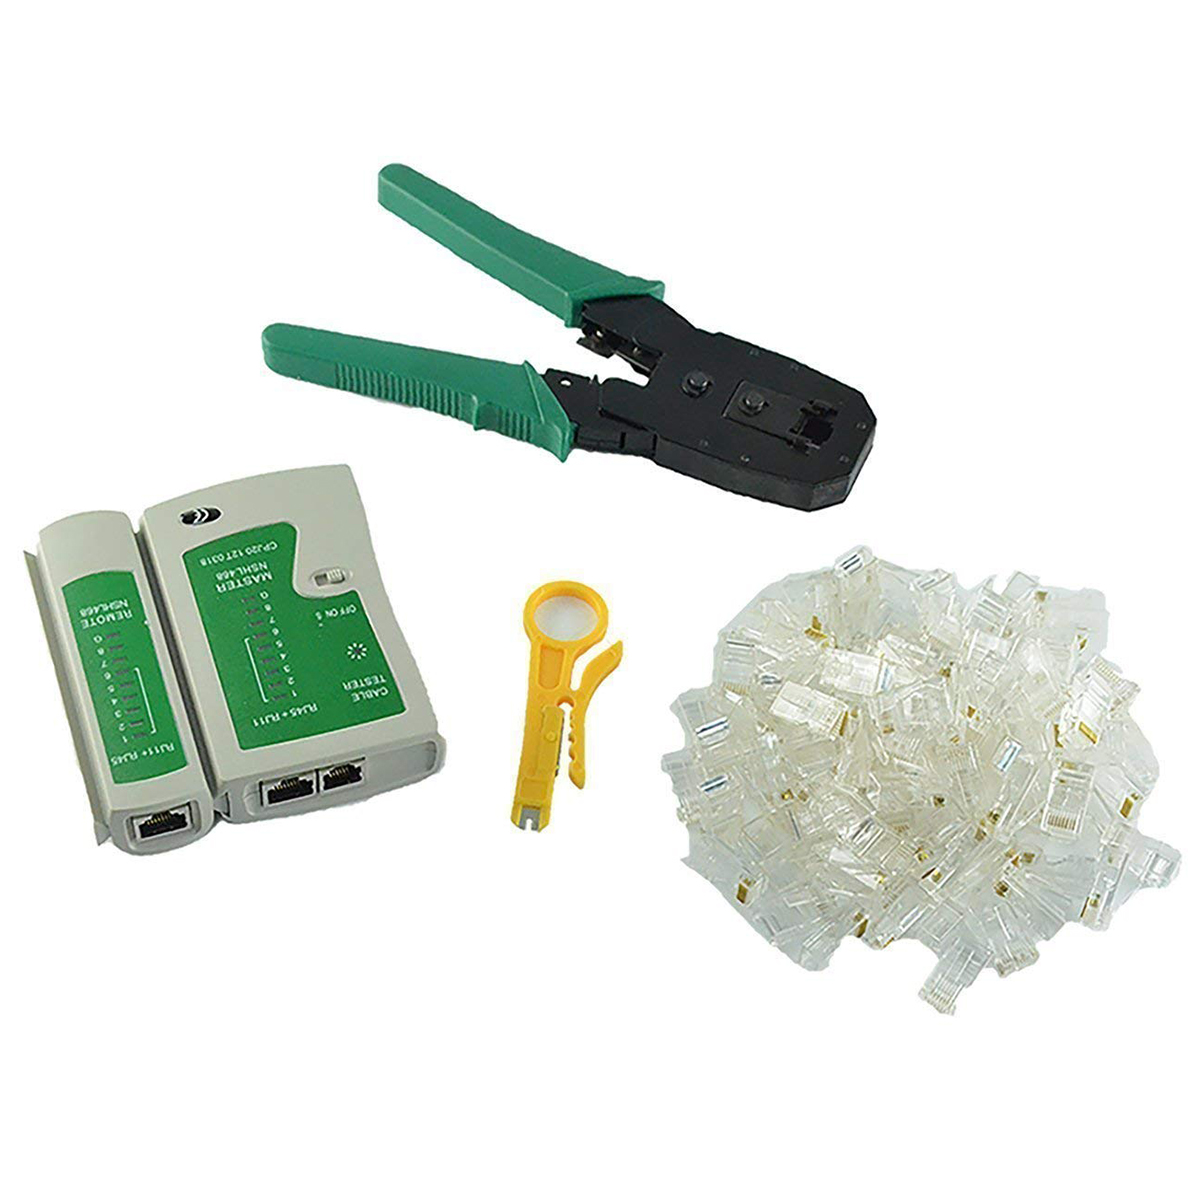 Network Ethernet LAN Kit 4 In 1 Cable Tester Crimping Plier Crimper Wire Stripper 100x Rj45 Cat5 Cat5e Connector Plug Network